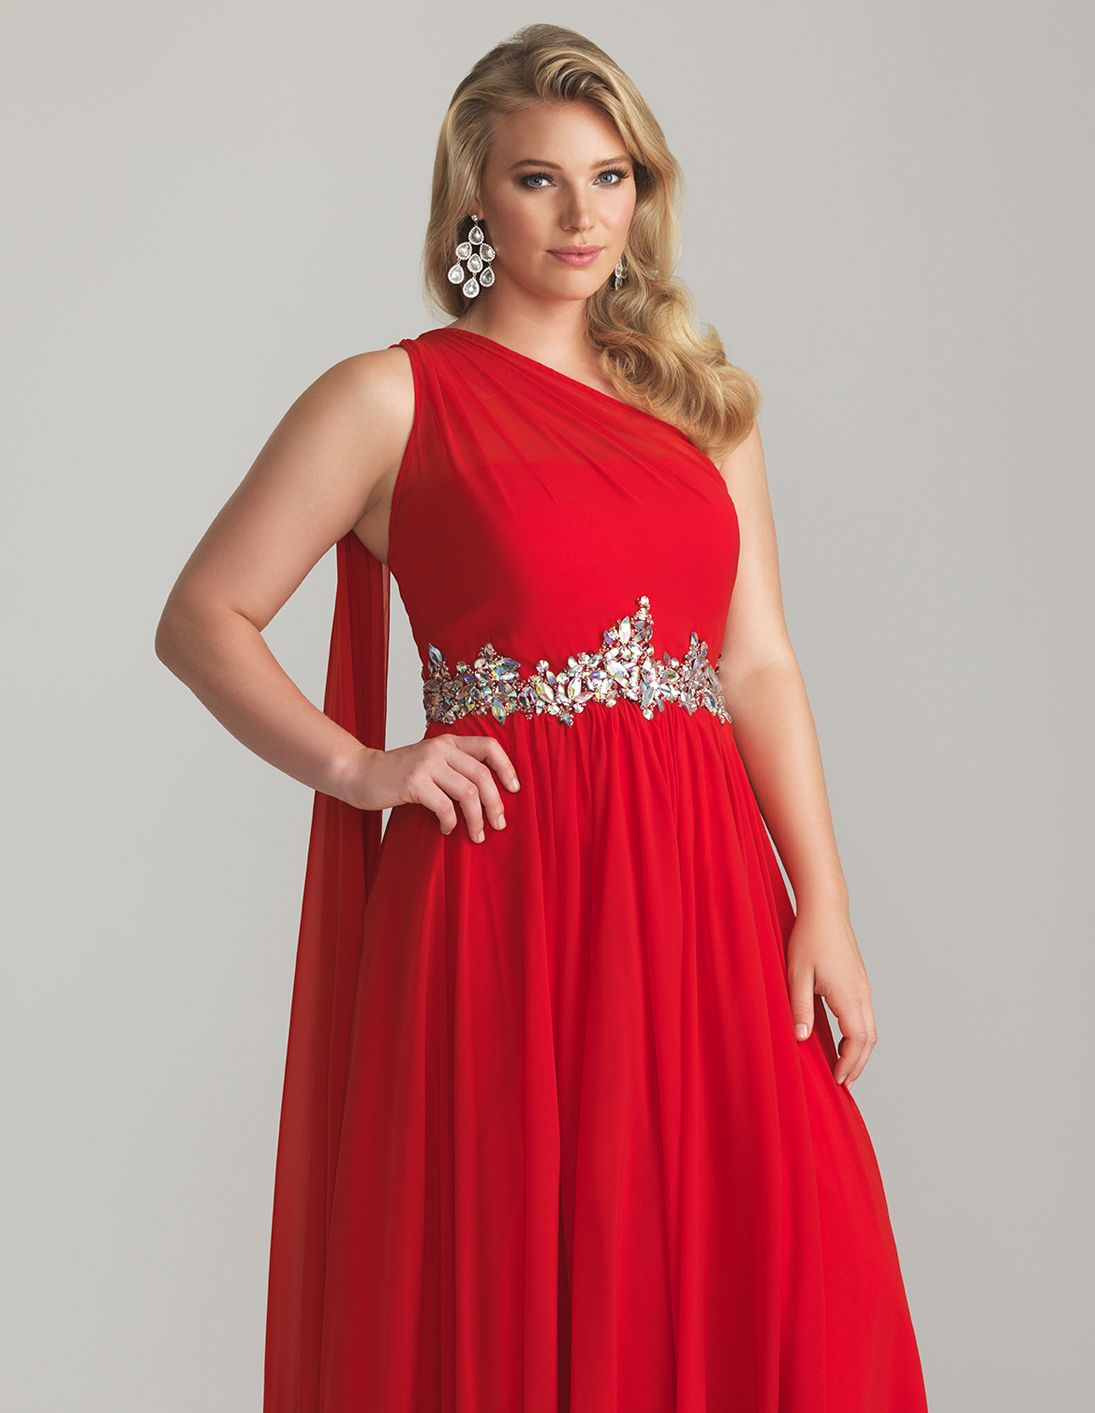 Plus Size Bridesmaid Dresses | ... Plus Size Prom Dress - Unique ...